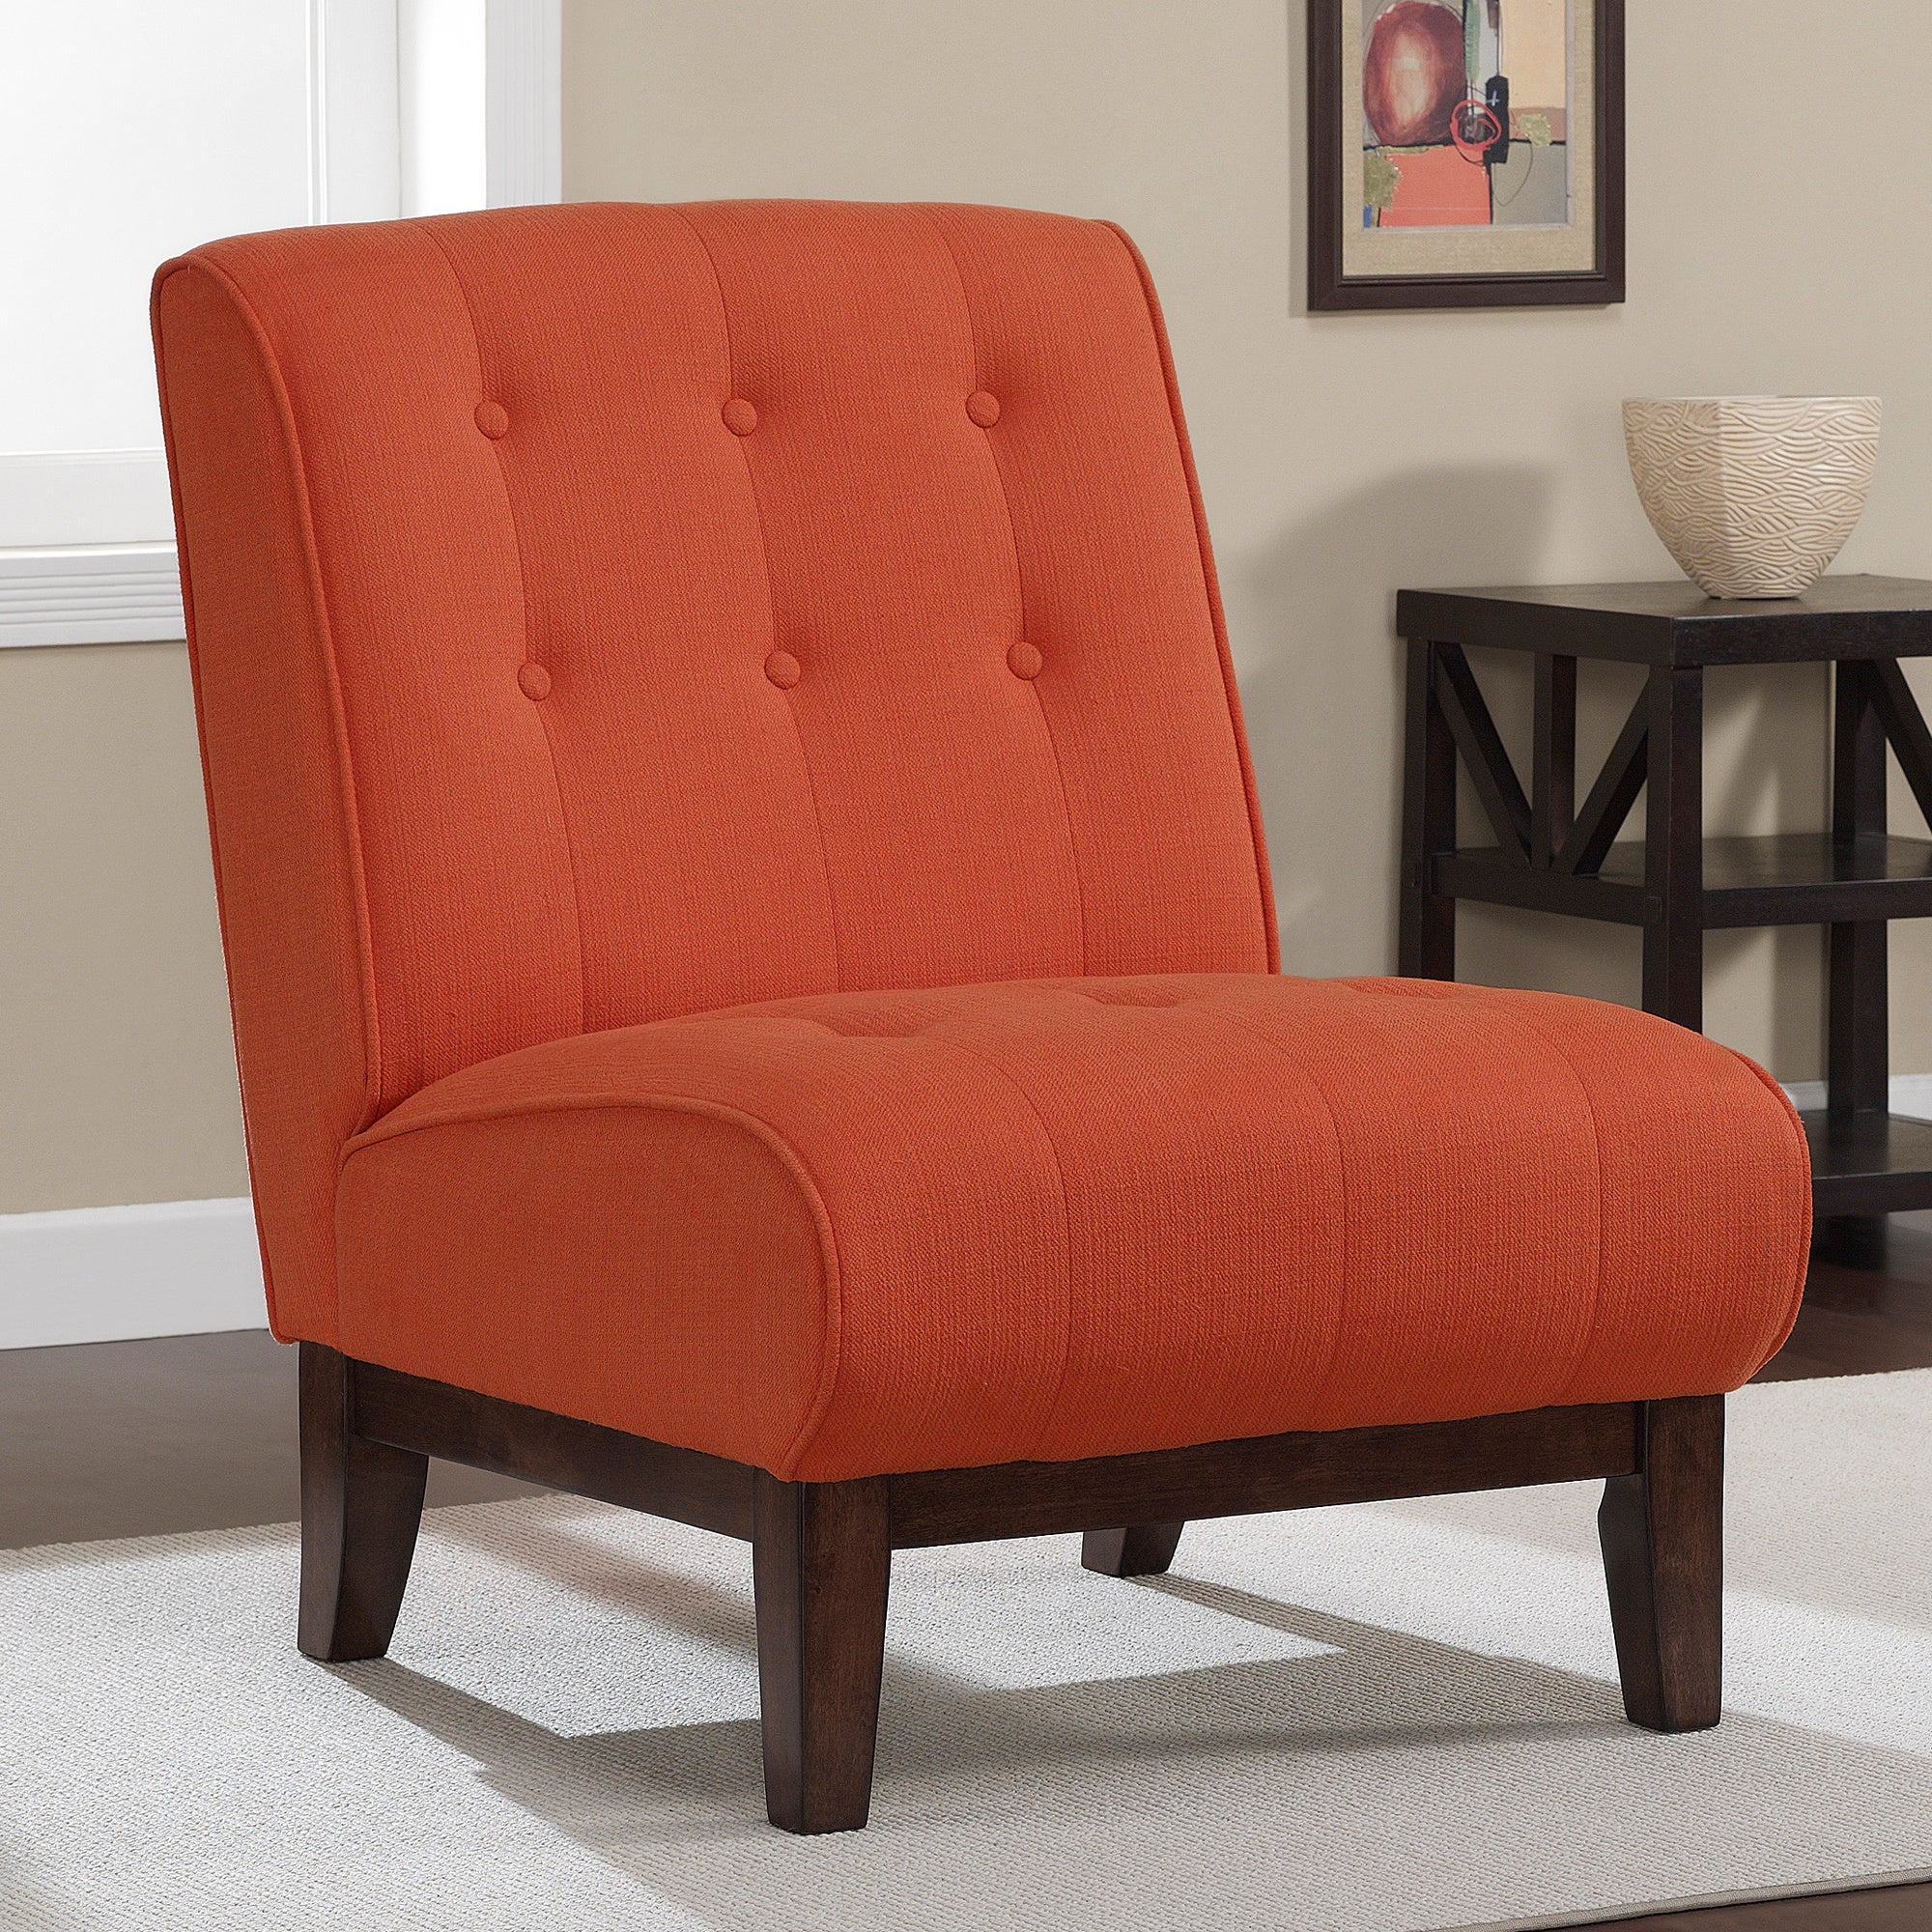 Slipper chair overstock shopping great deals on living room chairs